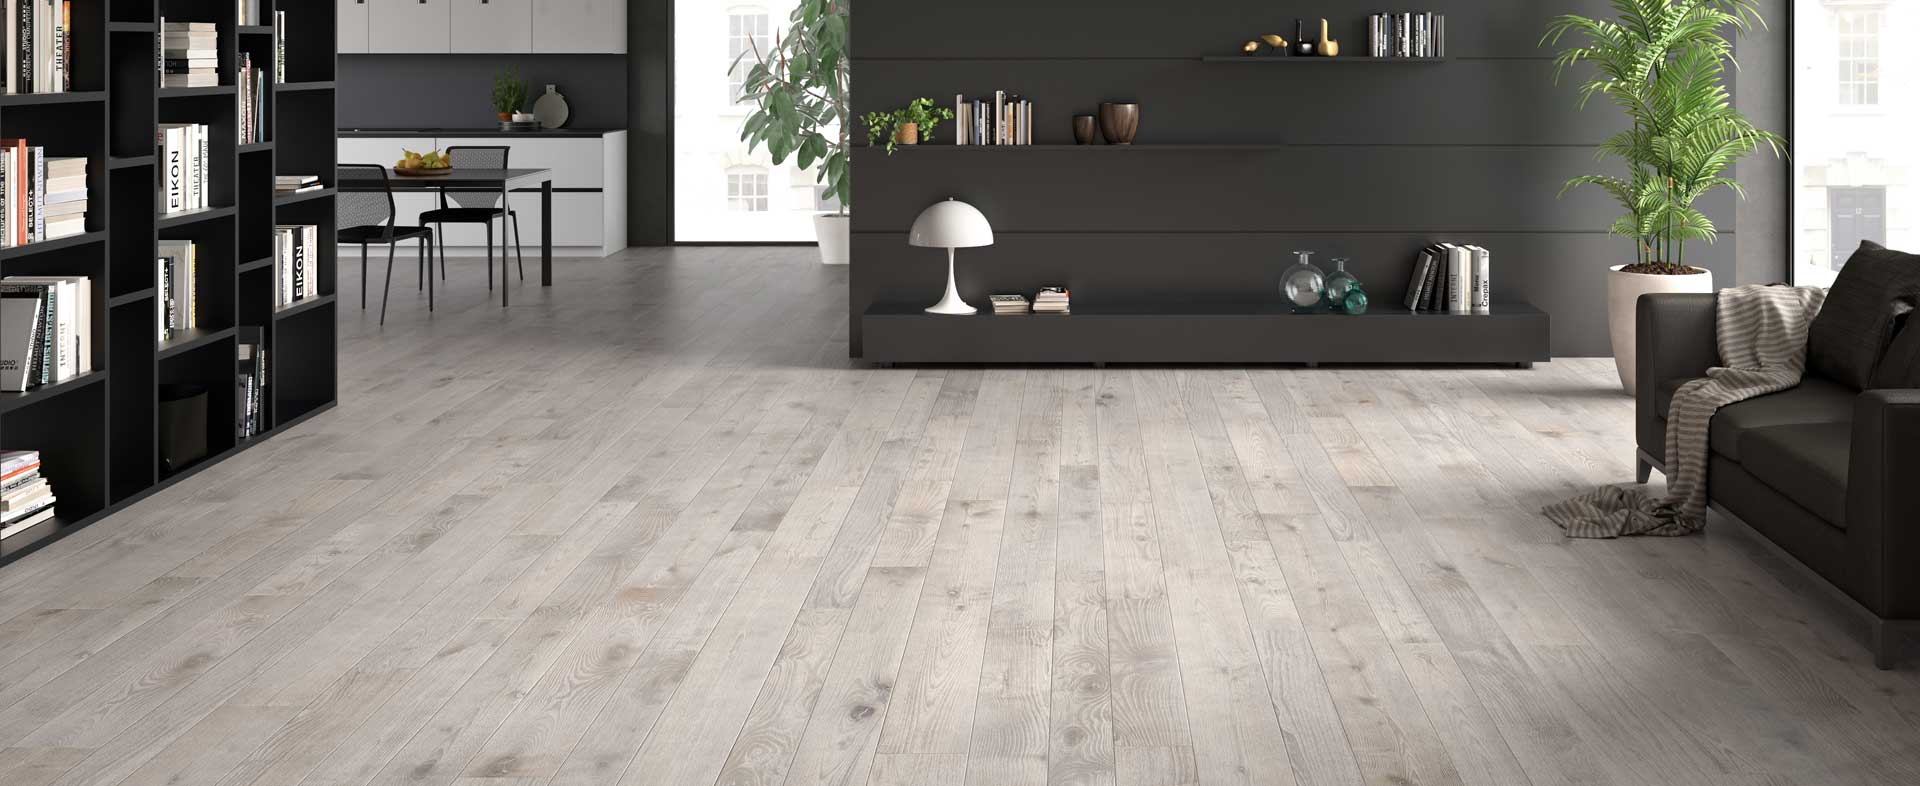 Chestnut lime effect Epoch Planks